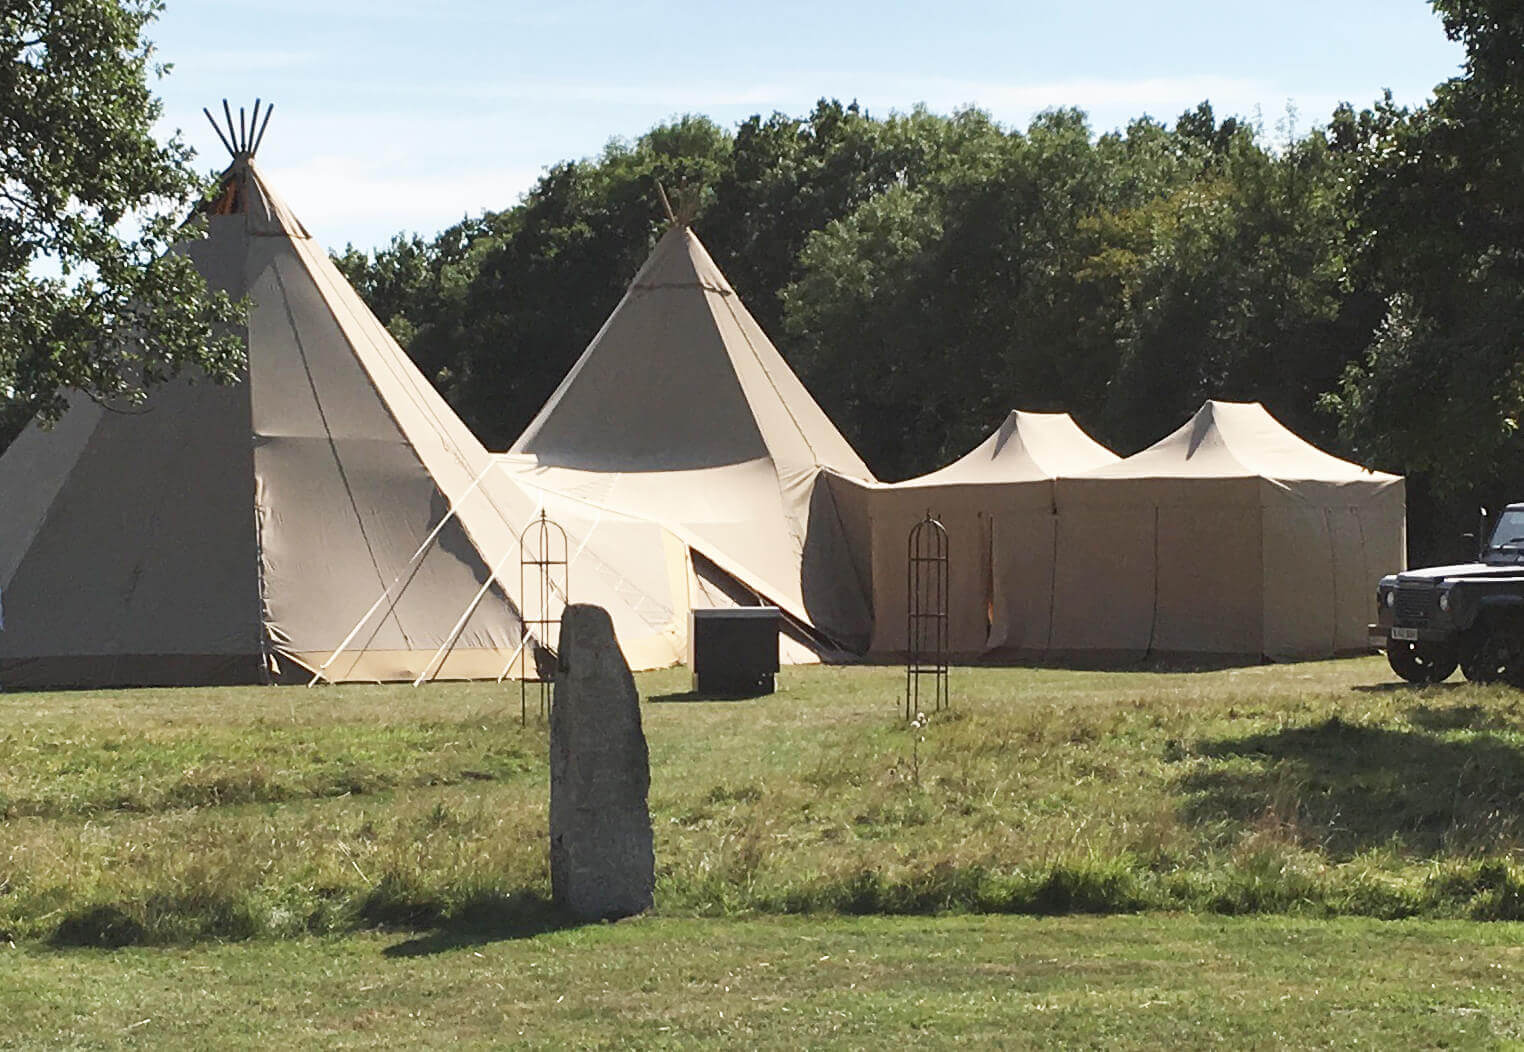 Catering Tent joined onto Tipis at a wedding